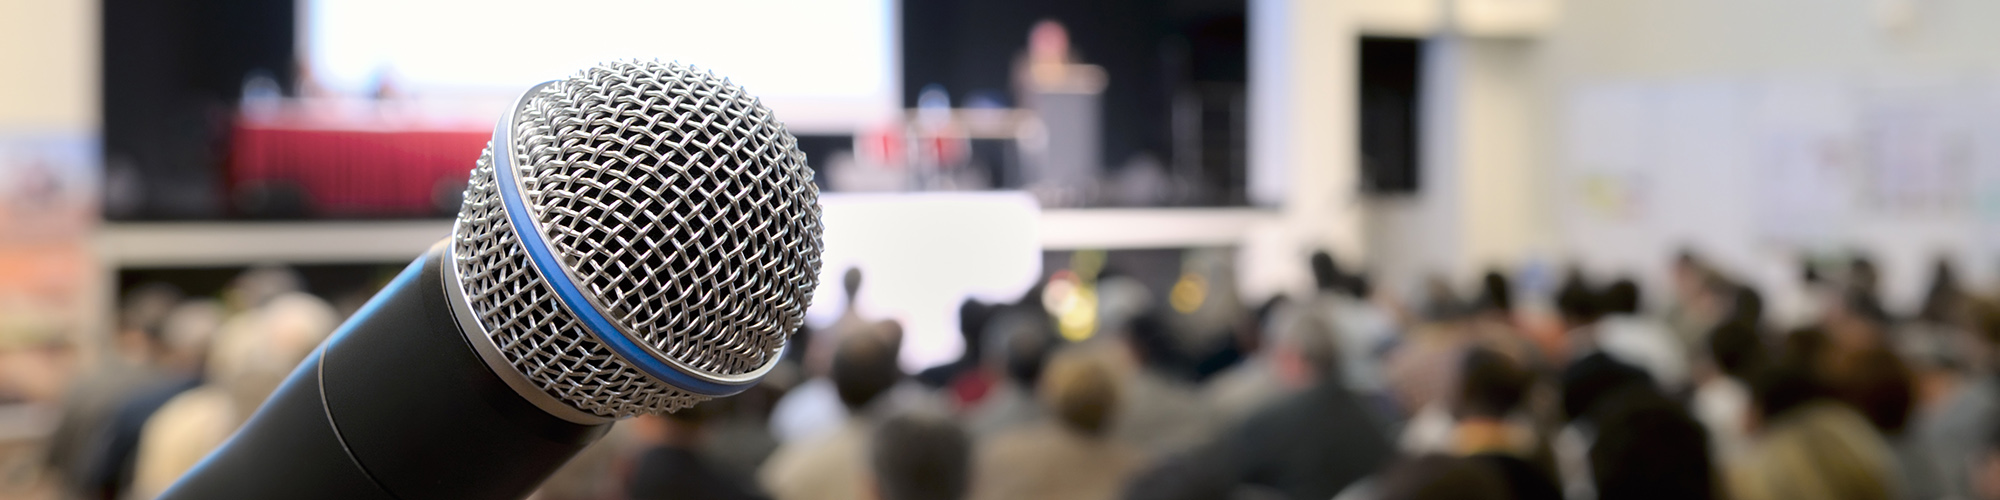 Microphone set in front of a blurred audience and presenter inside an auditorium